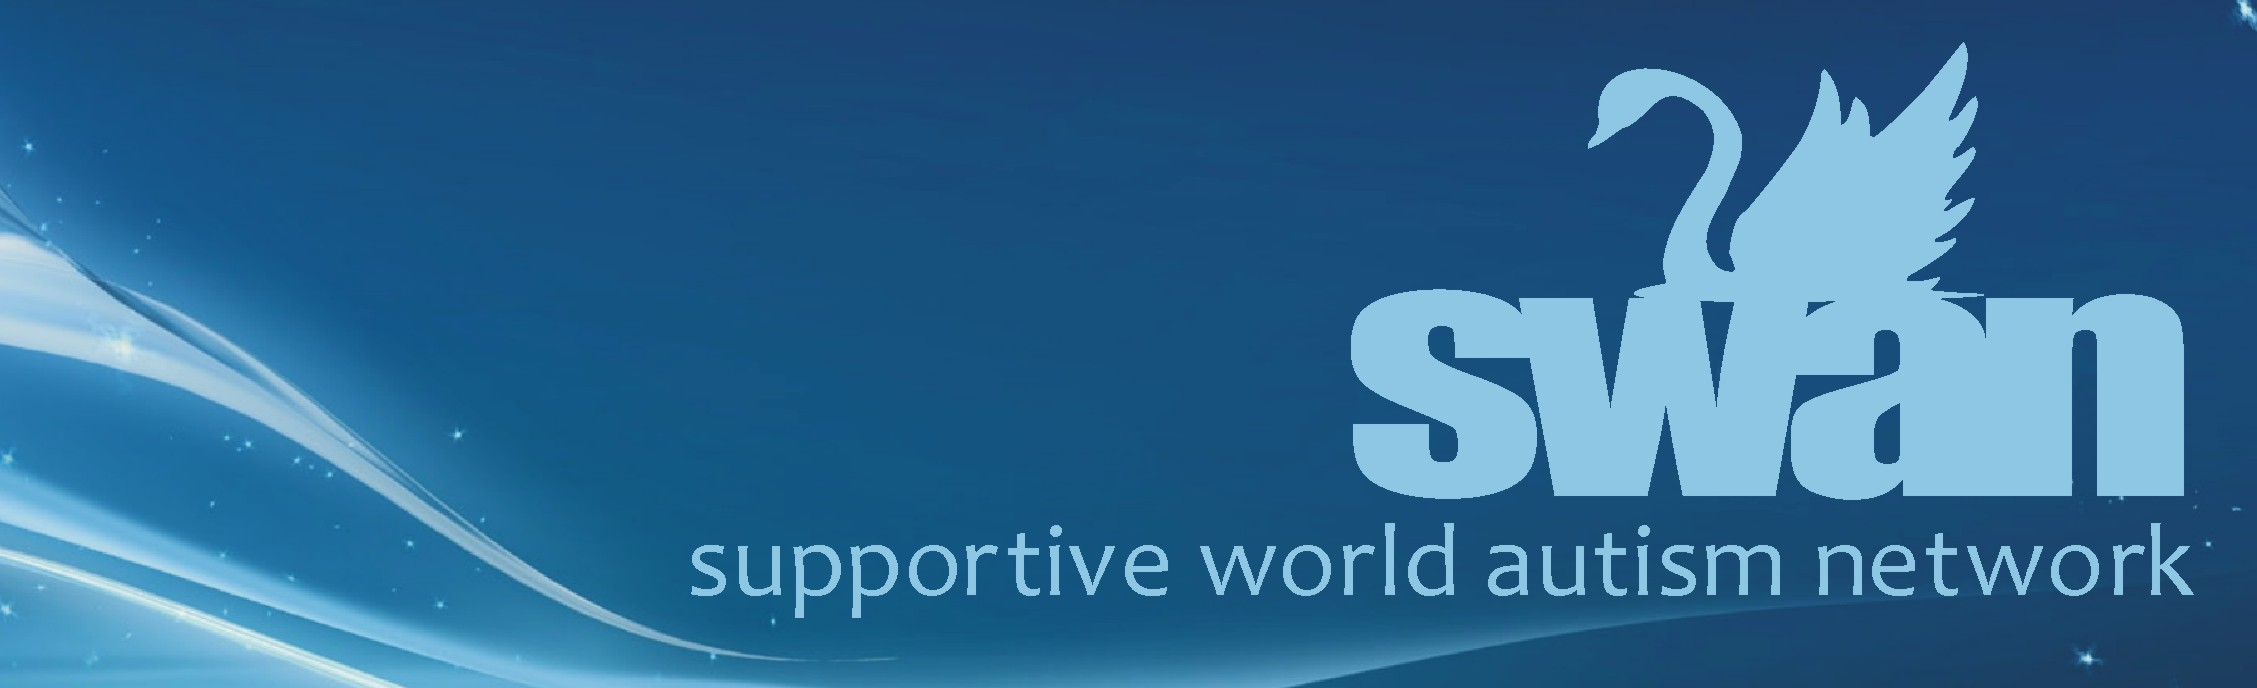 supportive network